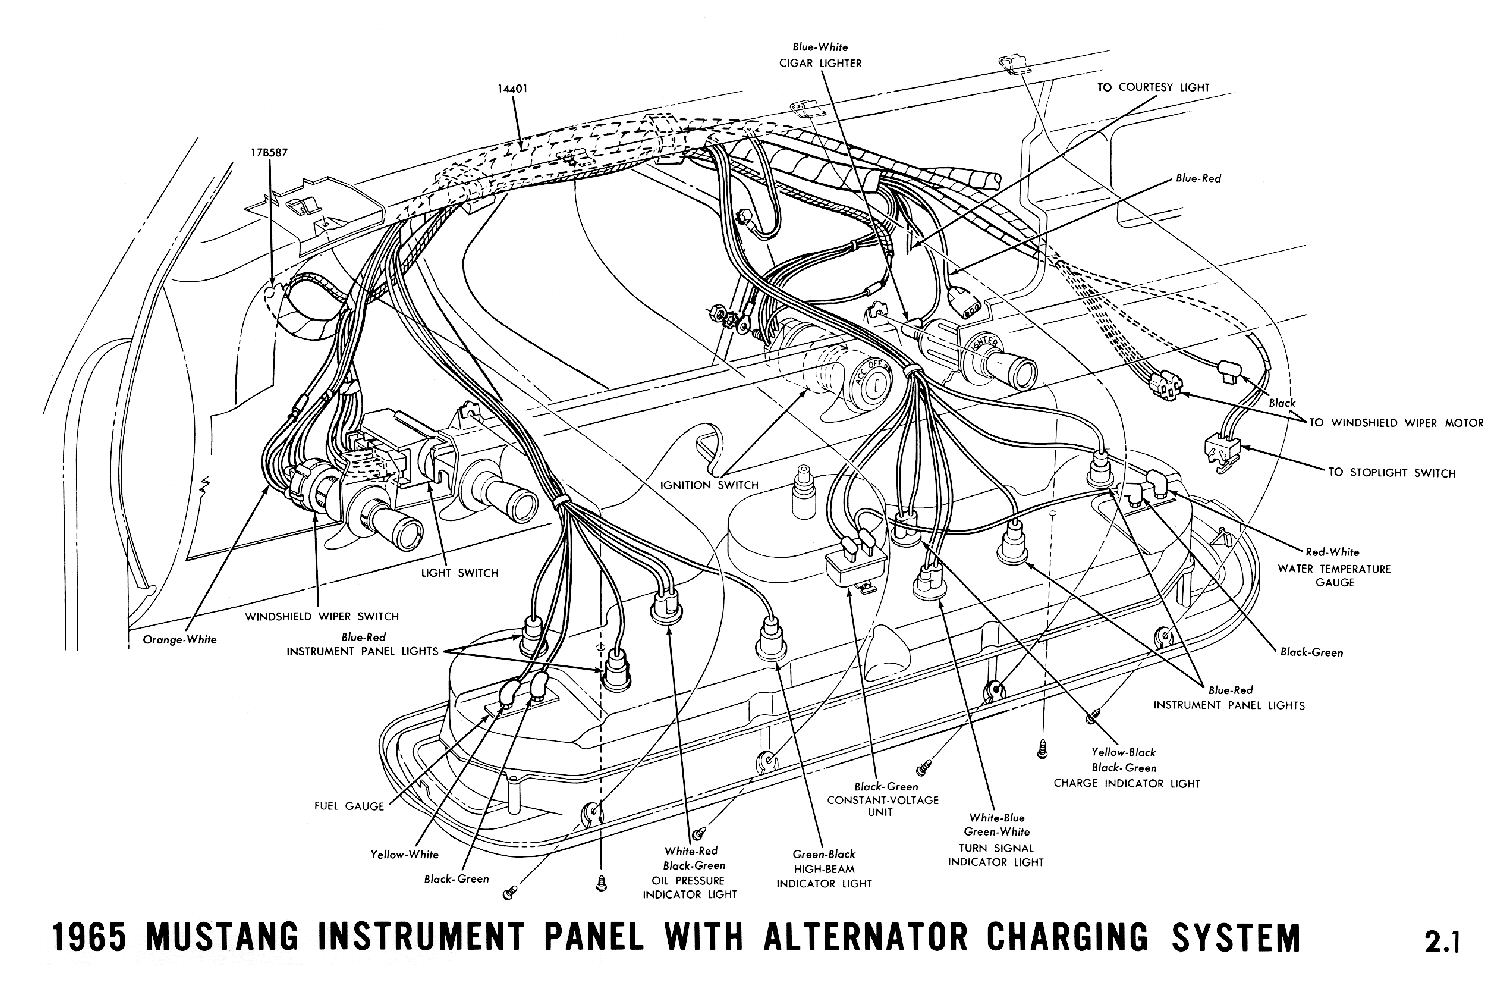 1965a 1965 mustang wiring diagrams average joe restoration 1965 ford mustang wiring diagrams at gsmx.co